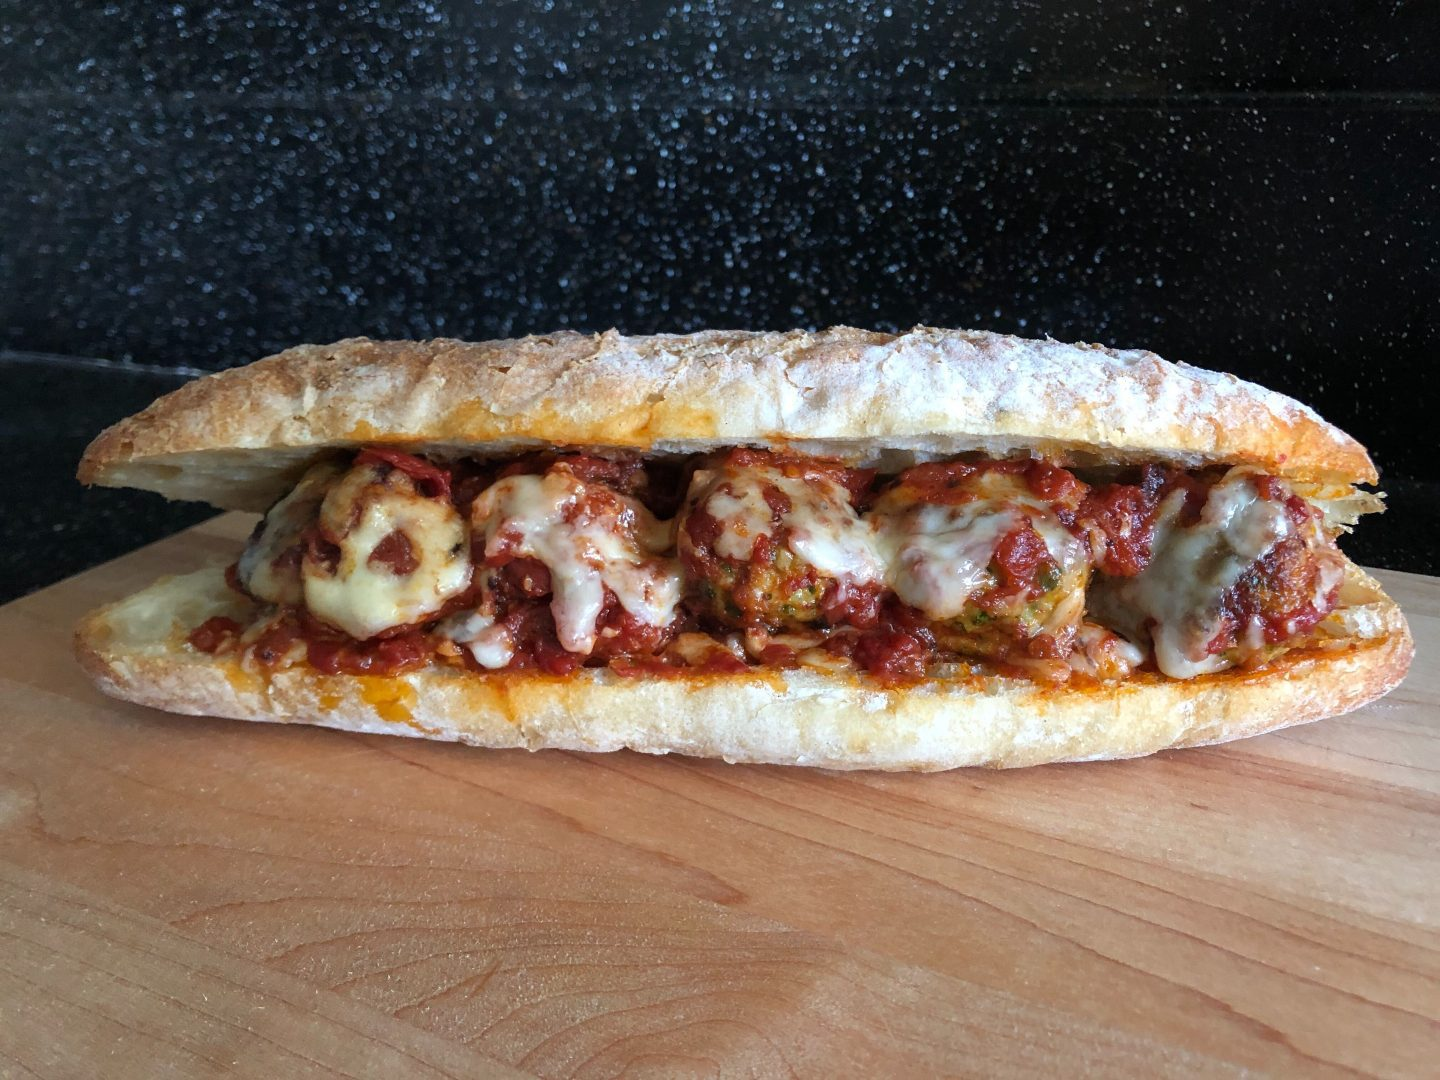 Chicken Parmesan meatballs in a meatball sub on a wooden countertop.